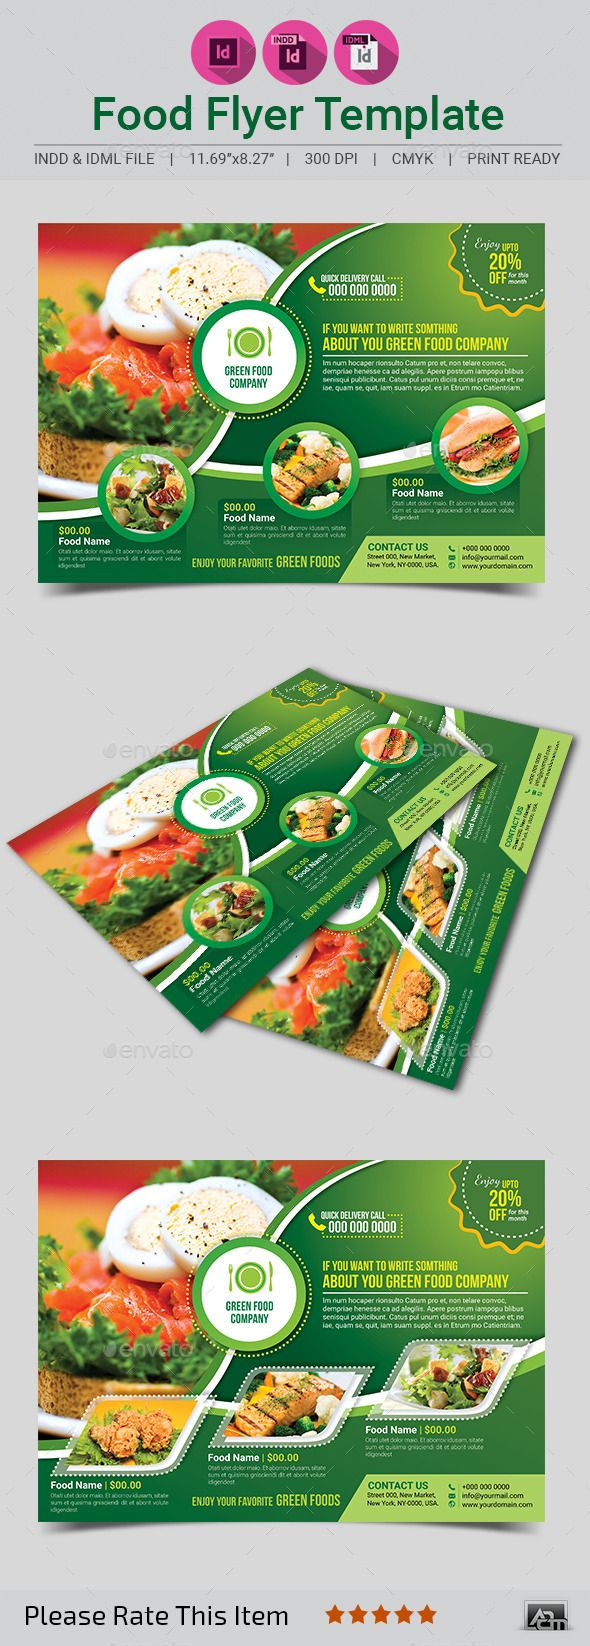 Green Food Flyer Template #design #foodflyer Download: http://graphicriver.net/item/green-food-flyer-template/11564056?ref=ksioks